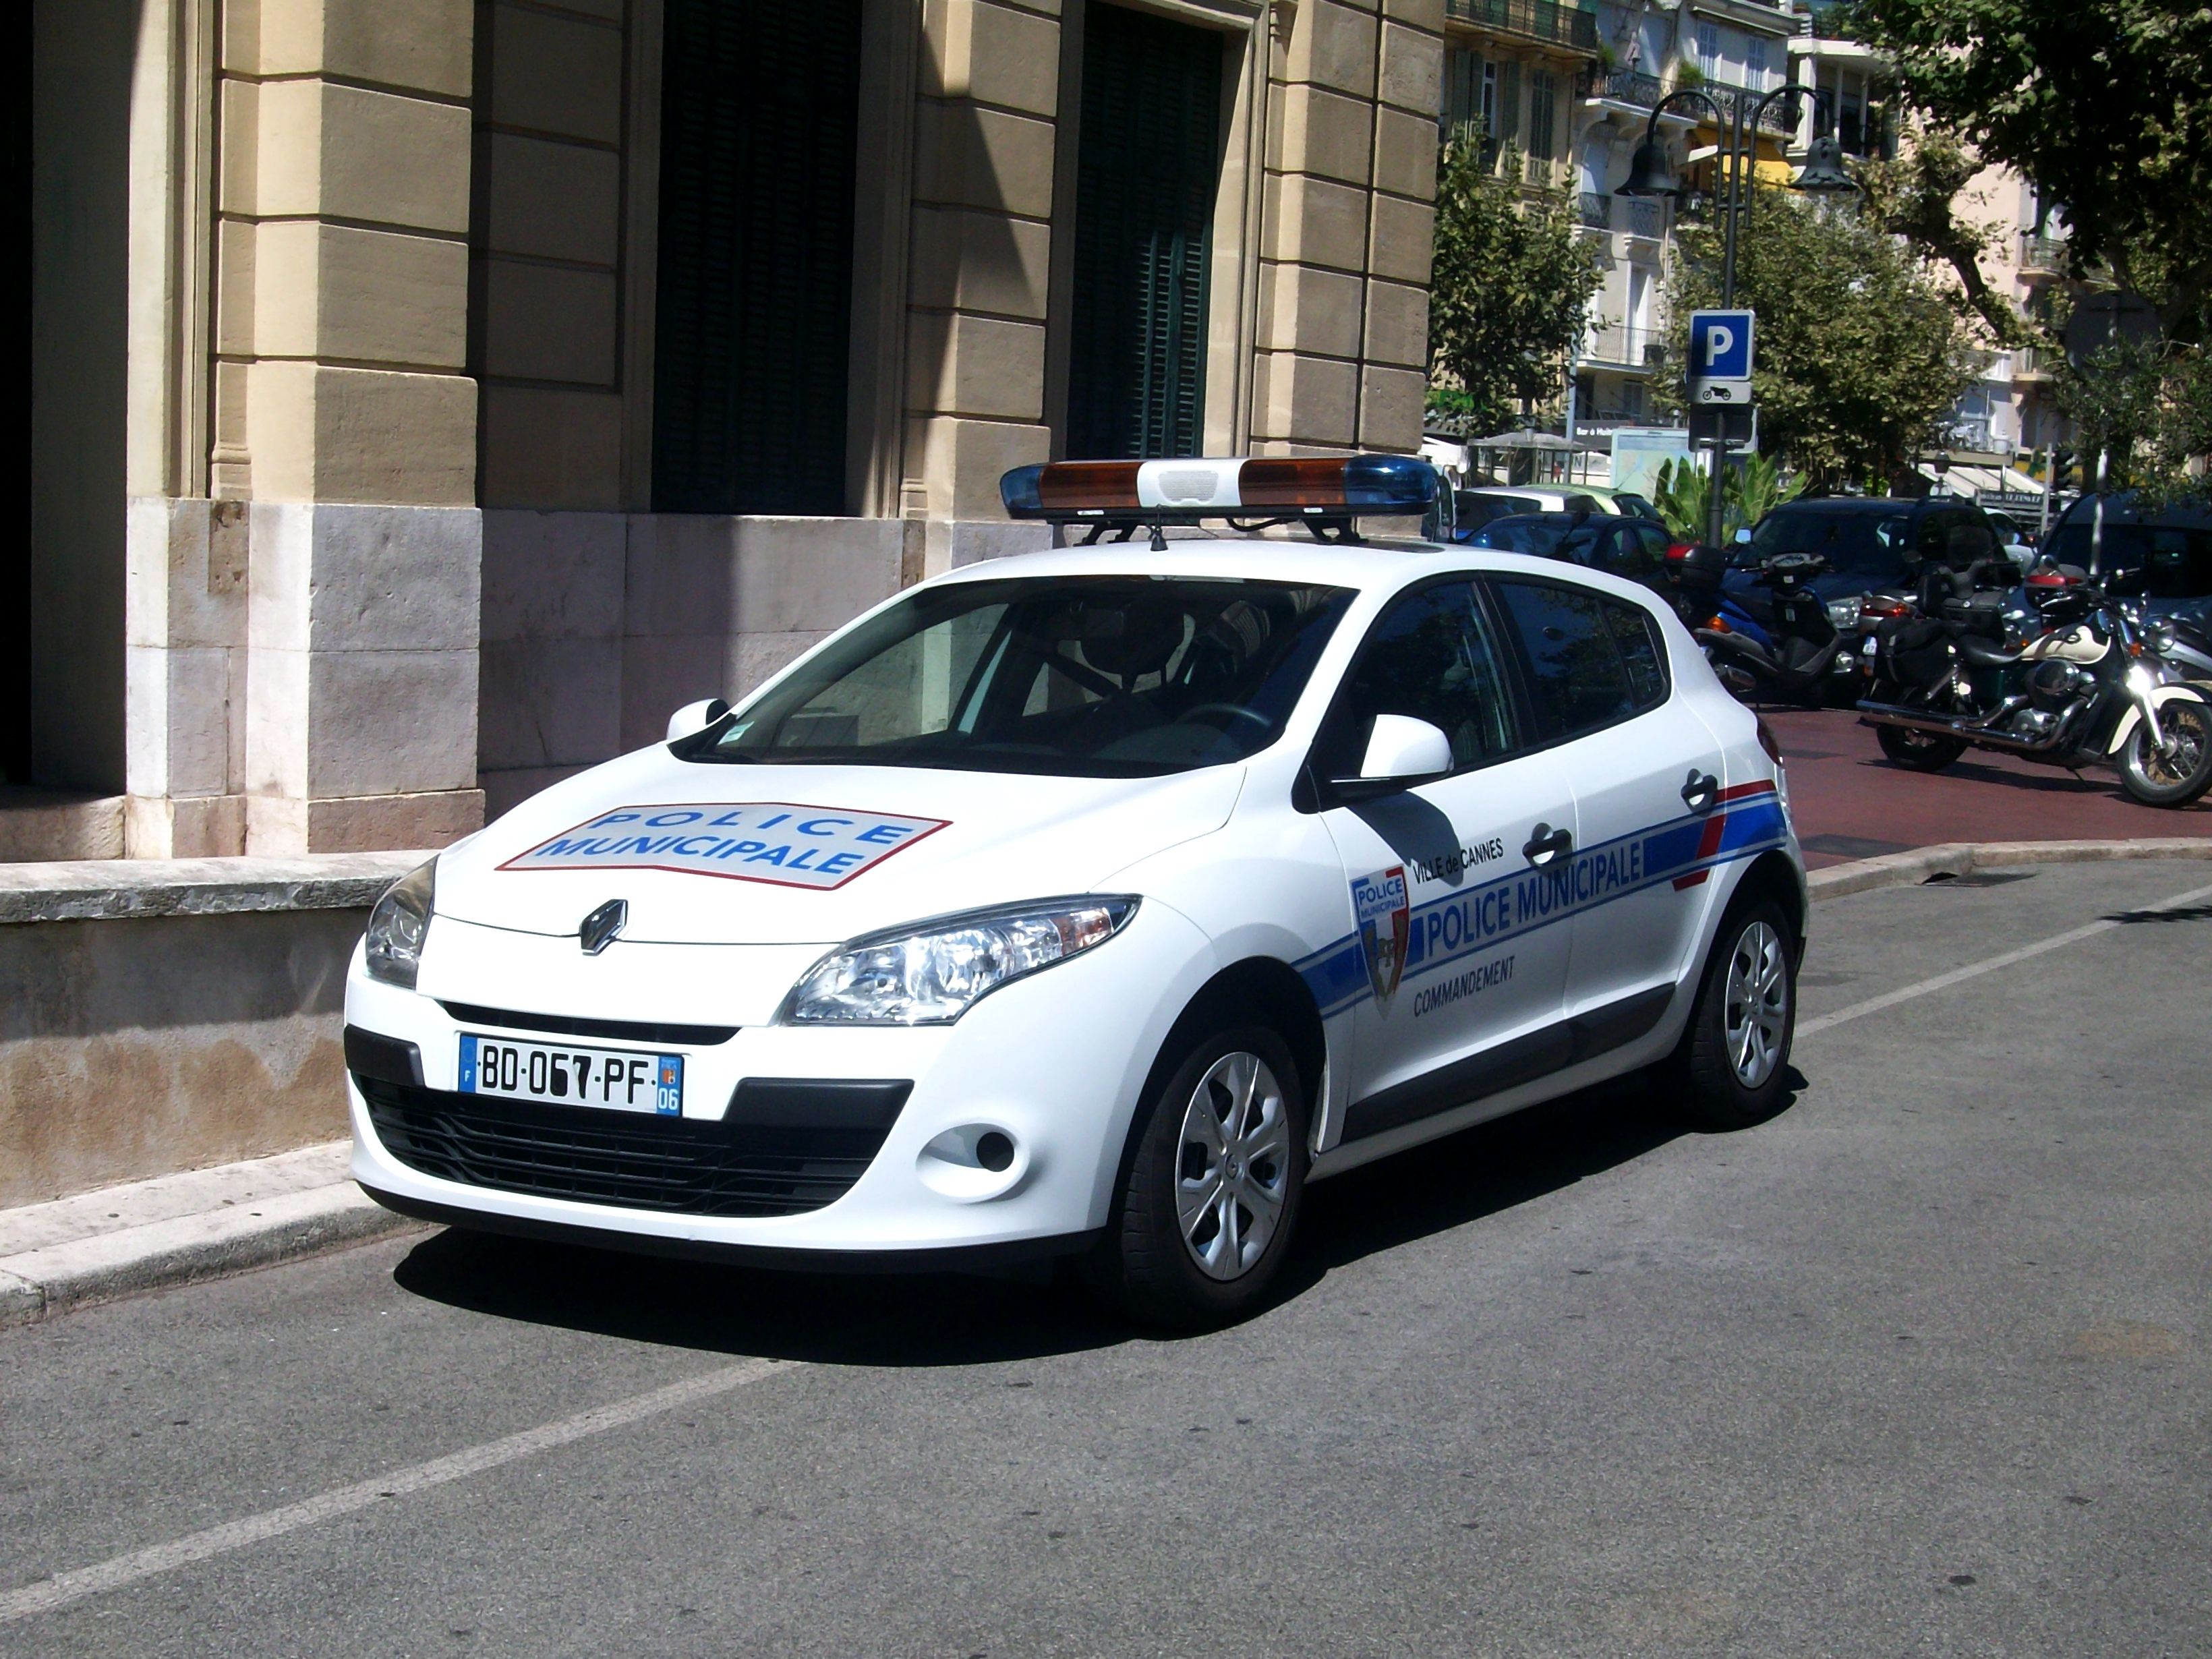 File police municipale cannes renault m gane iii jpg for Police cannes